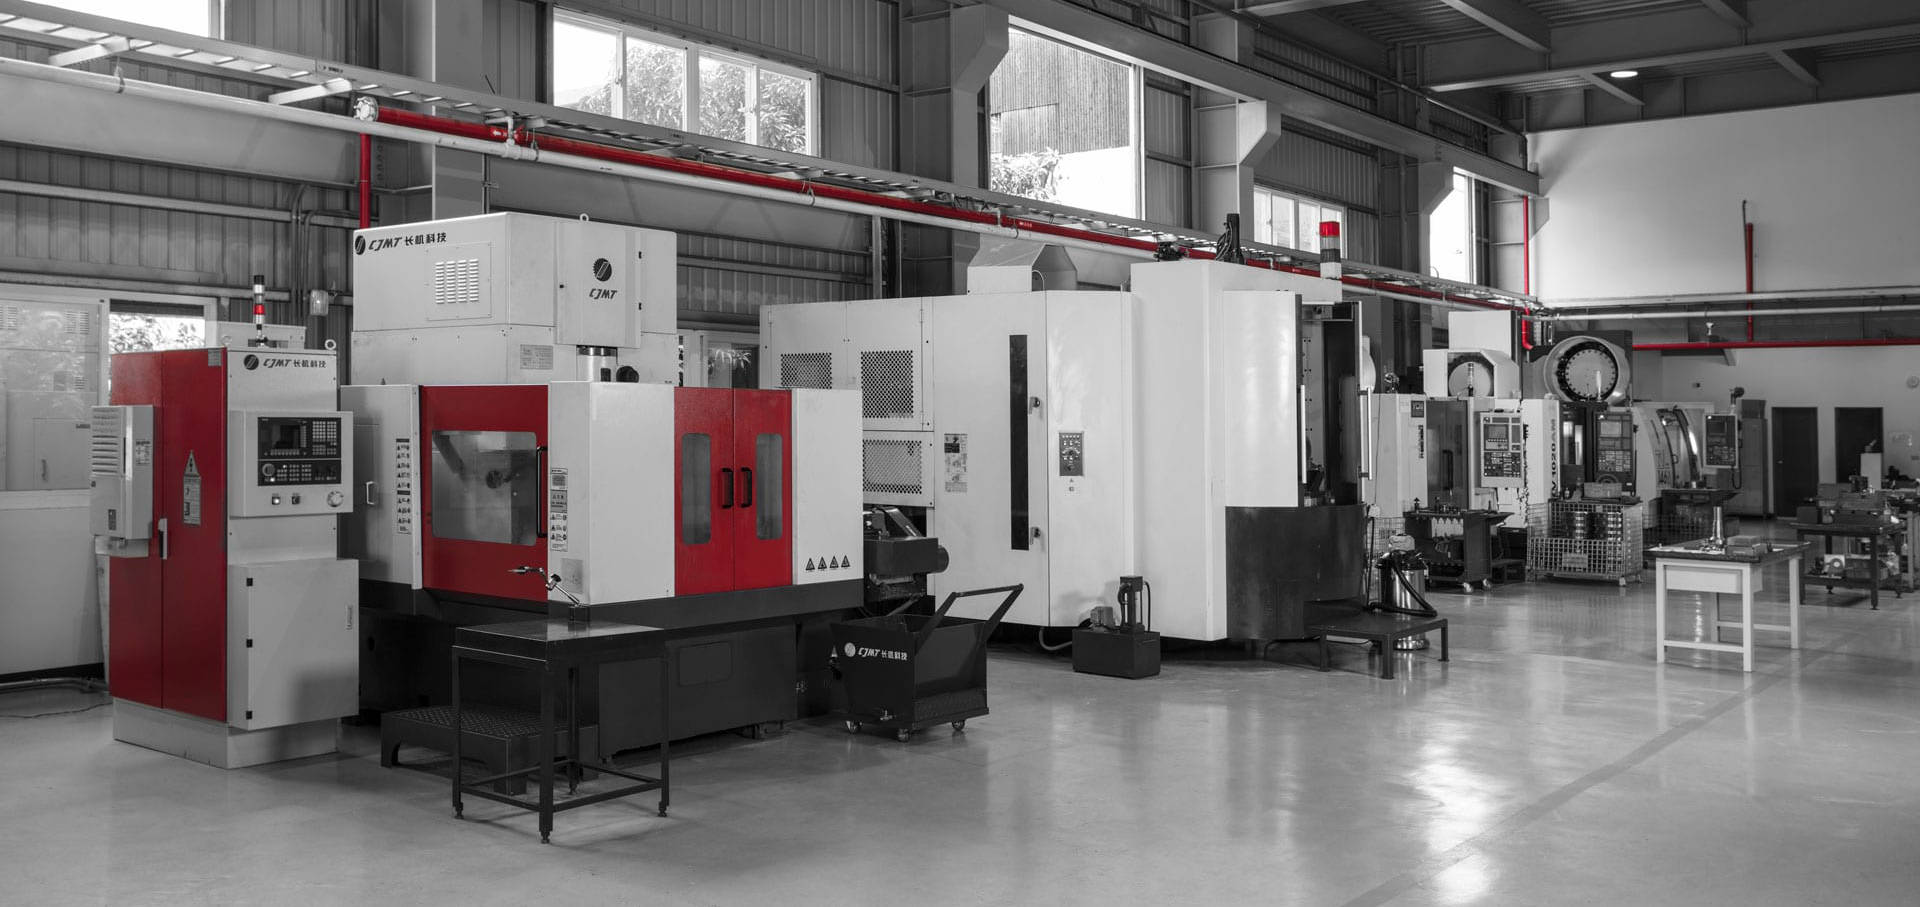 Speed Reducer Production Facility in Taiwan with a row of CNC Machine tools producing the gearboxes and speed reducers